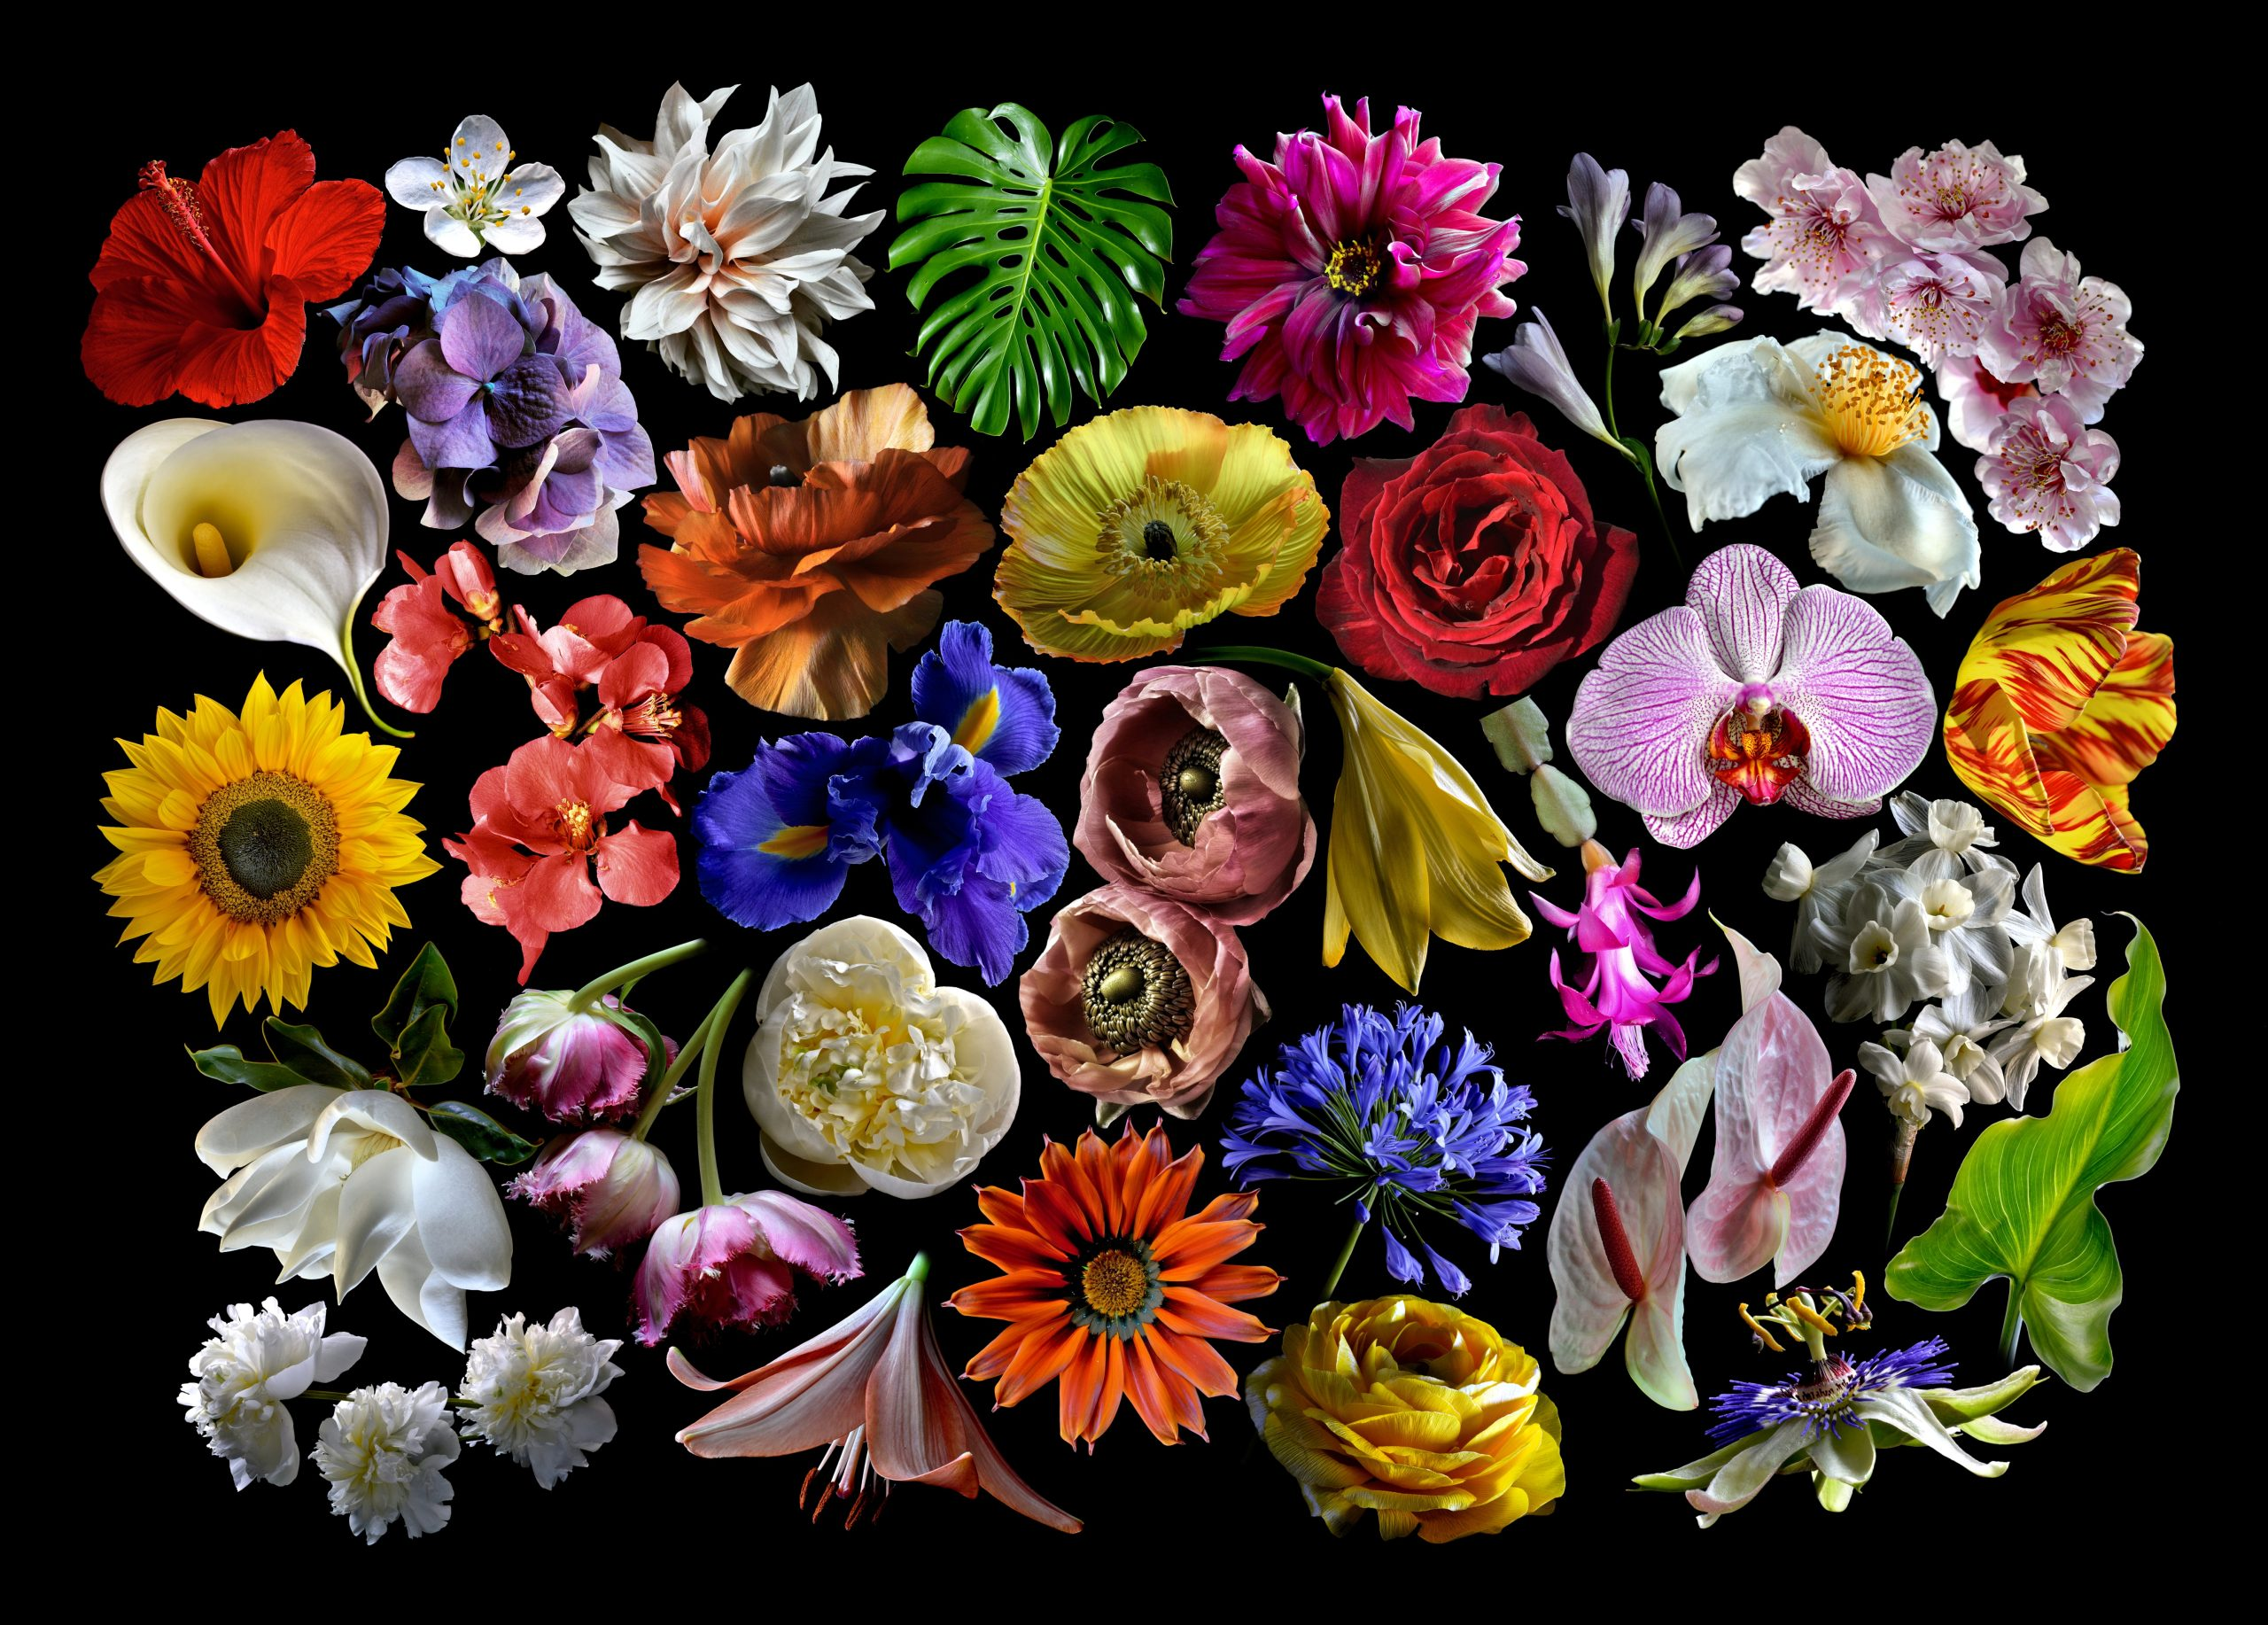 Floral Collage 01